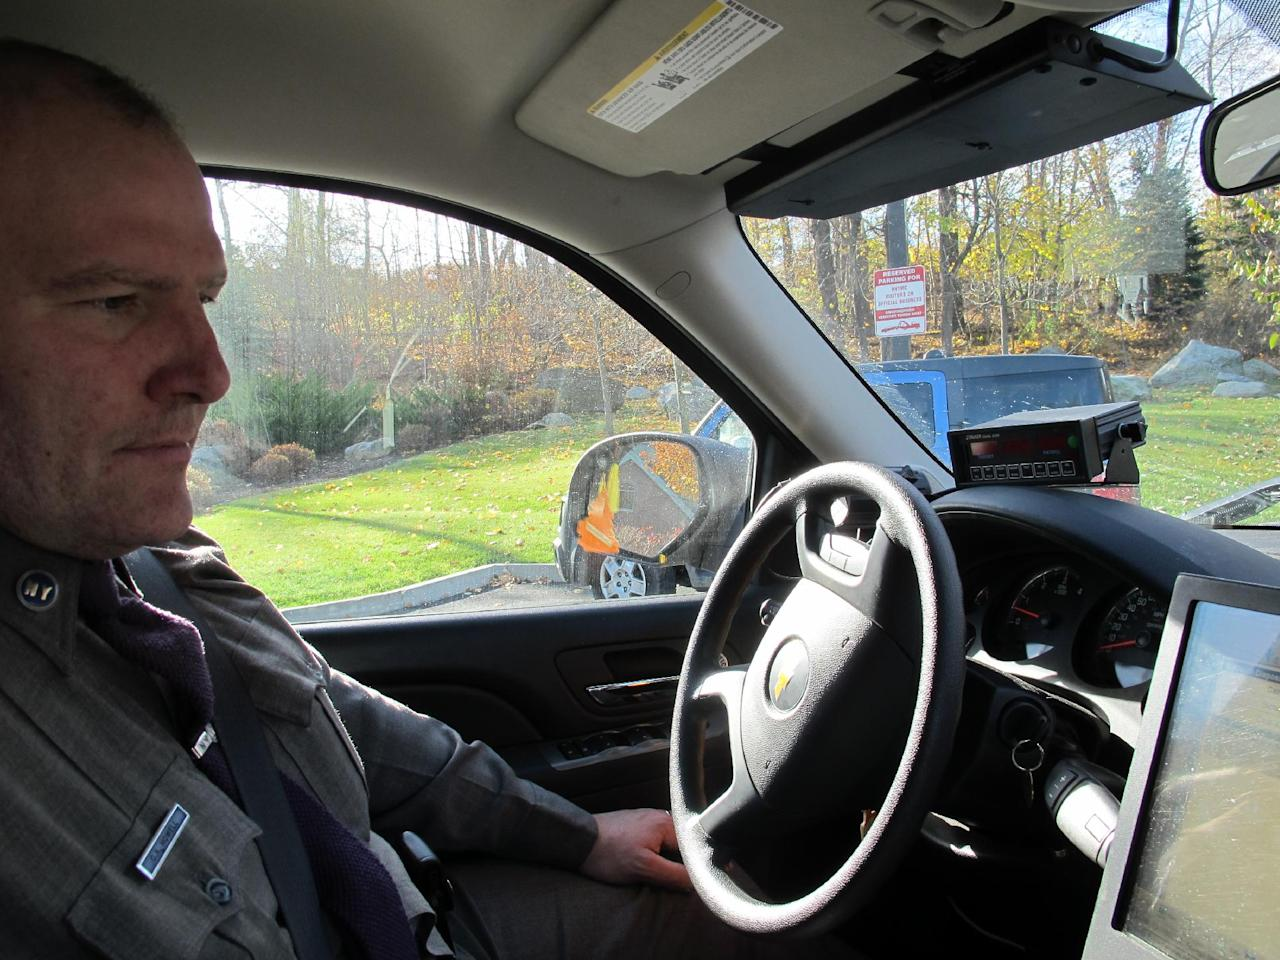 New York State Trooper Clayton Howell checks a screen that displays driving records inside his patrol vehicle in Hawthorne, N.Y., on Thursday, Nov. 14, 2013. Troopers are using a fleet of tall, unmarked SUVs as part of a crackdown on texting while driving. (AP Photo/Jim Fitzgerald)